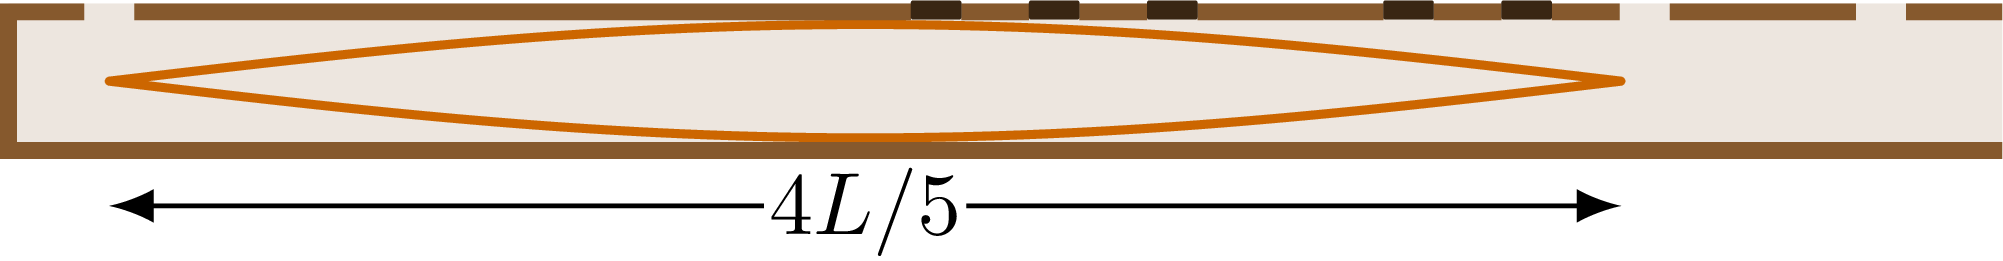 waves_standing_flute-003.png